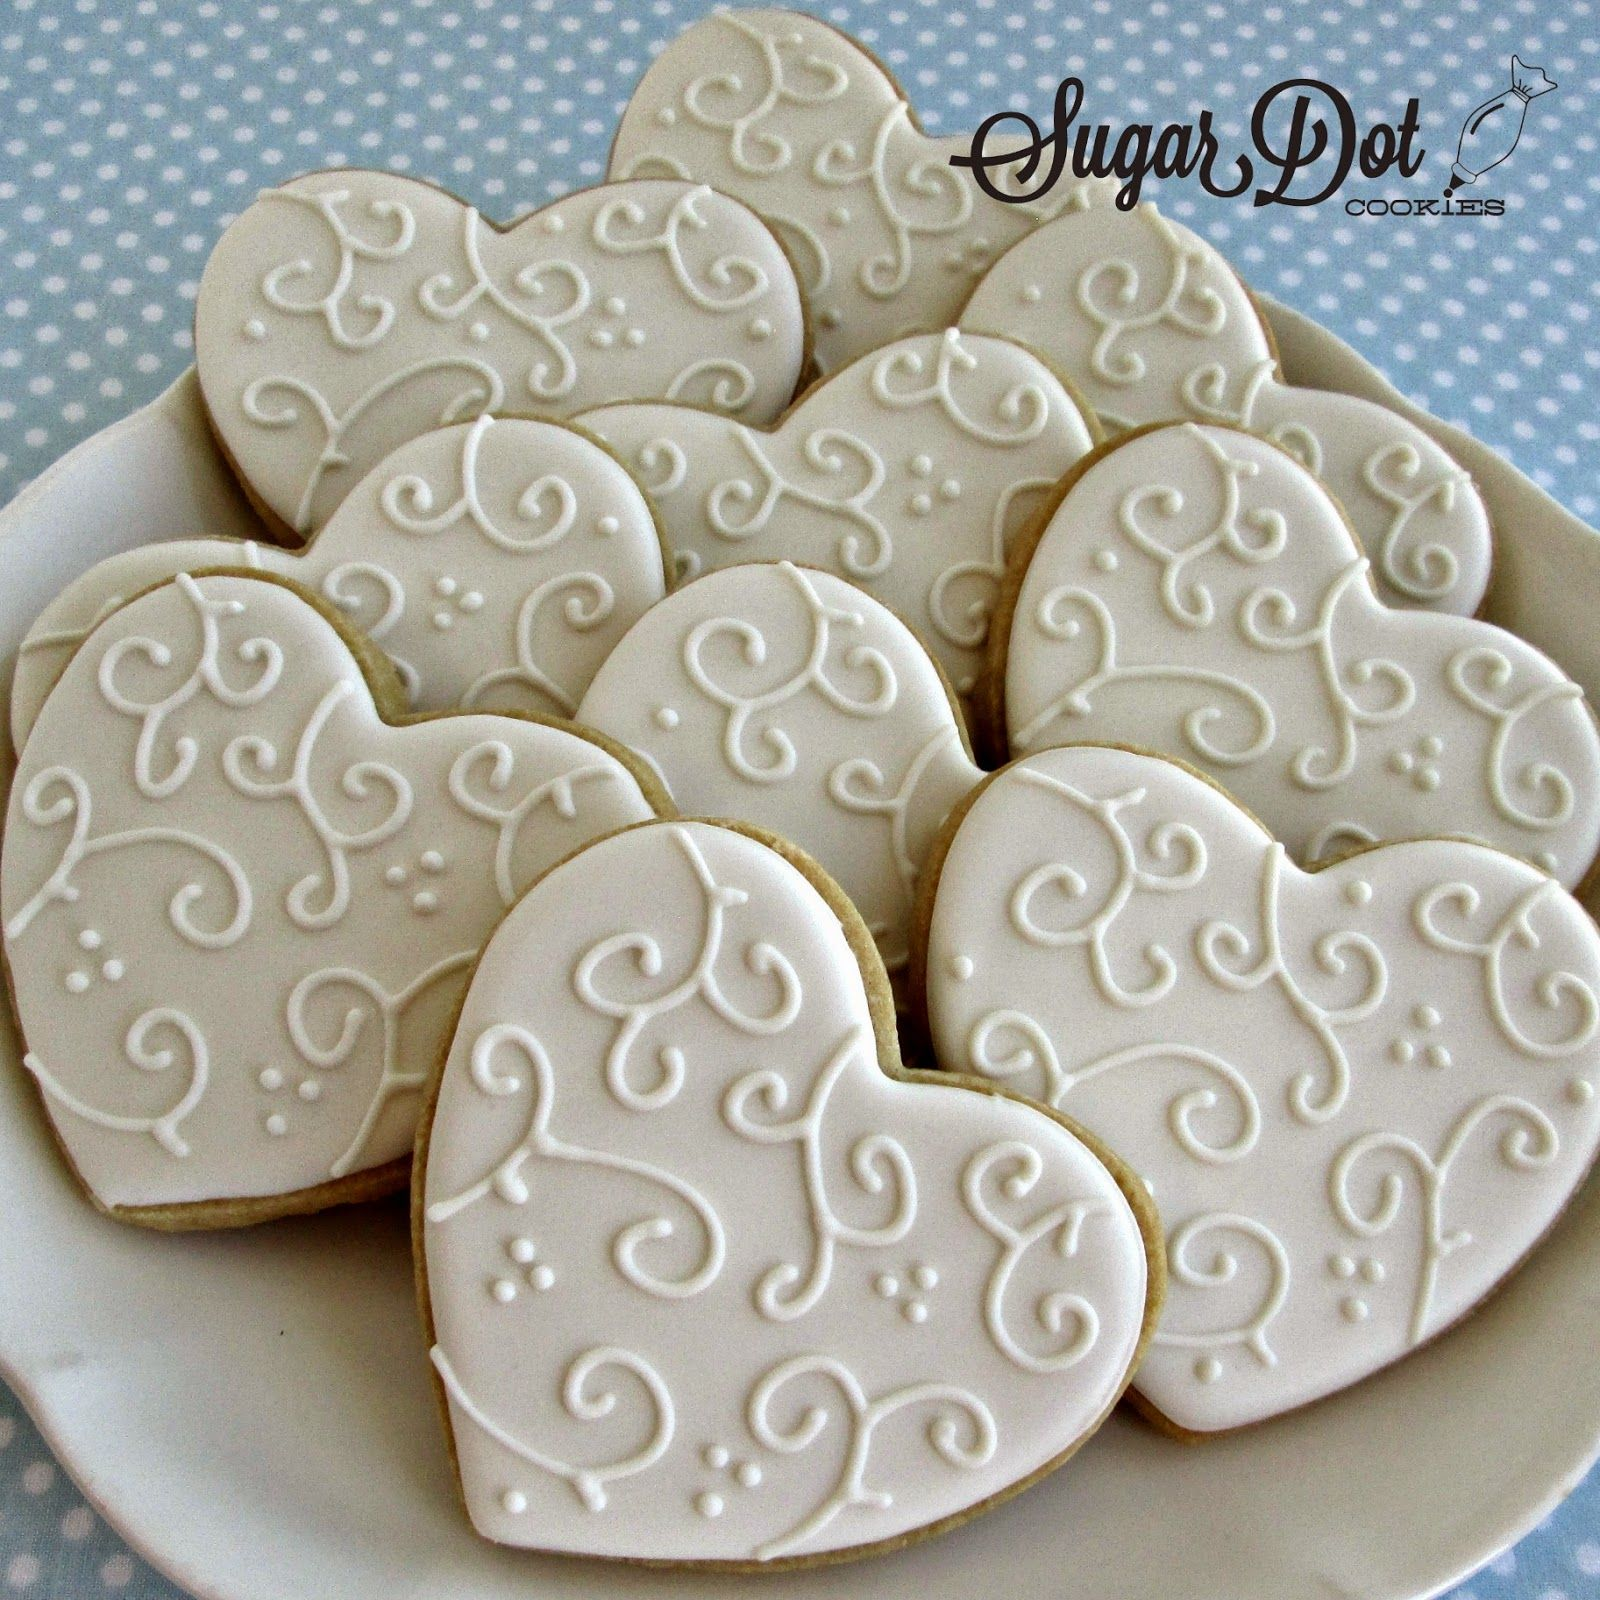 Wedding Sugar Cookies Decorating Ideas